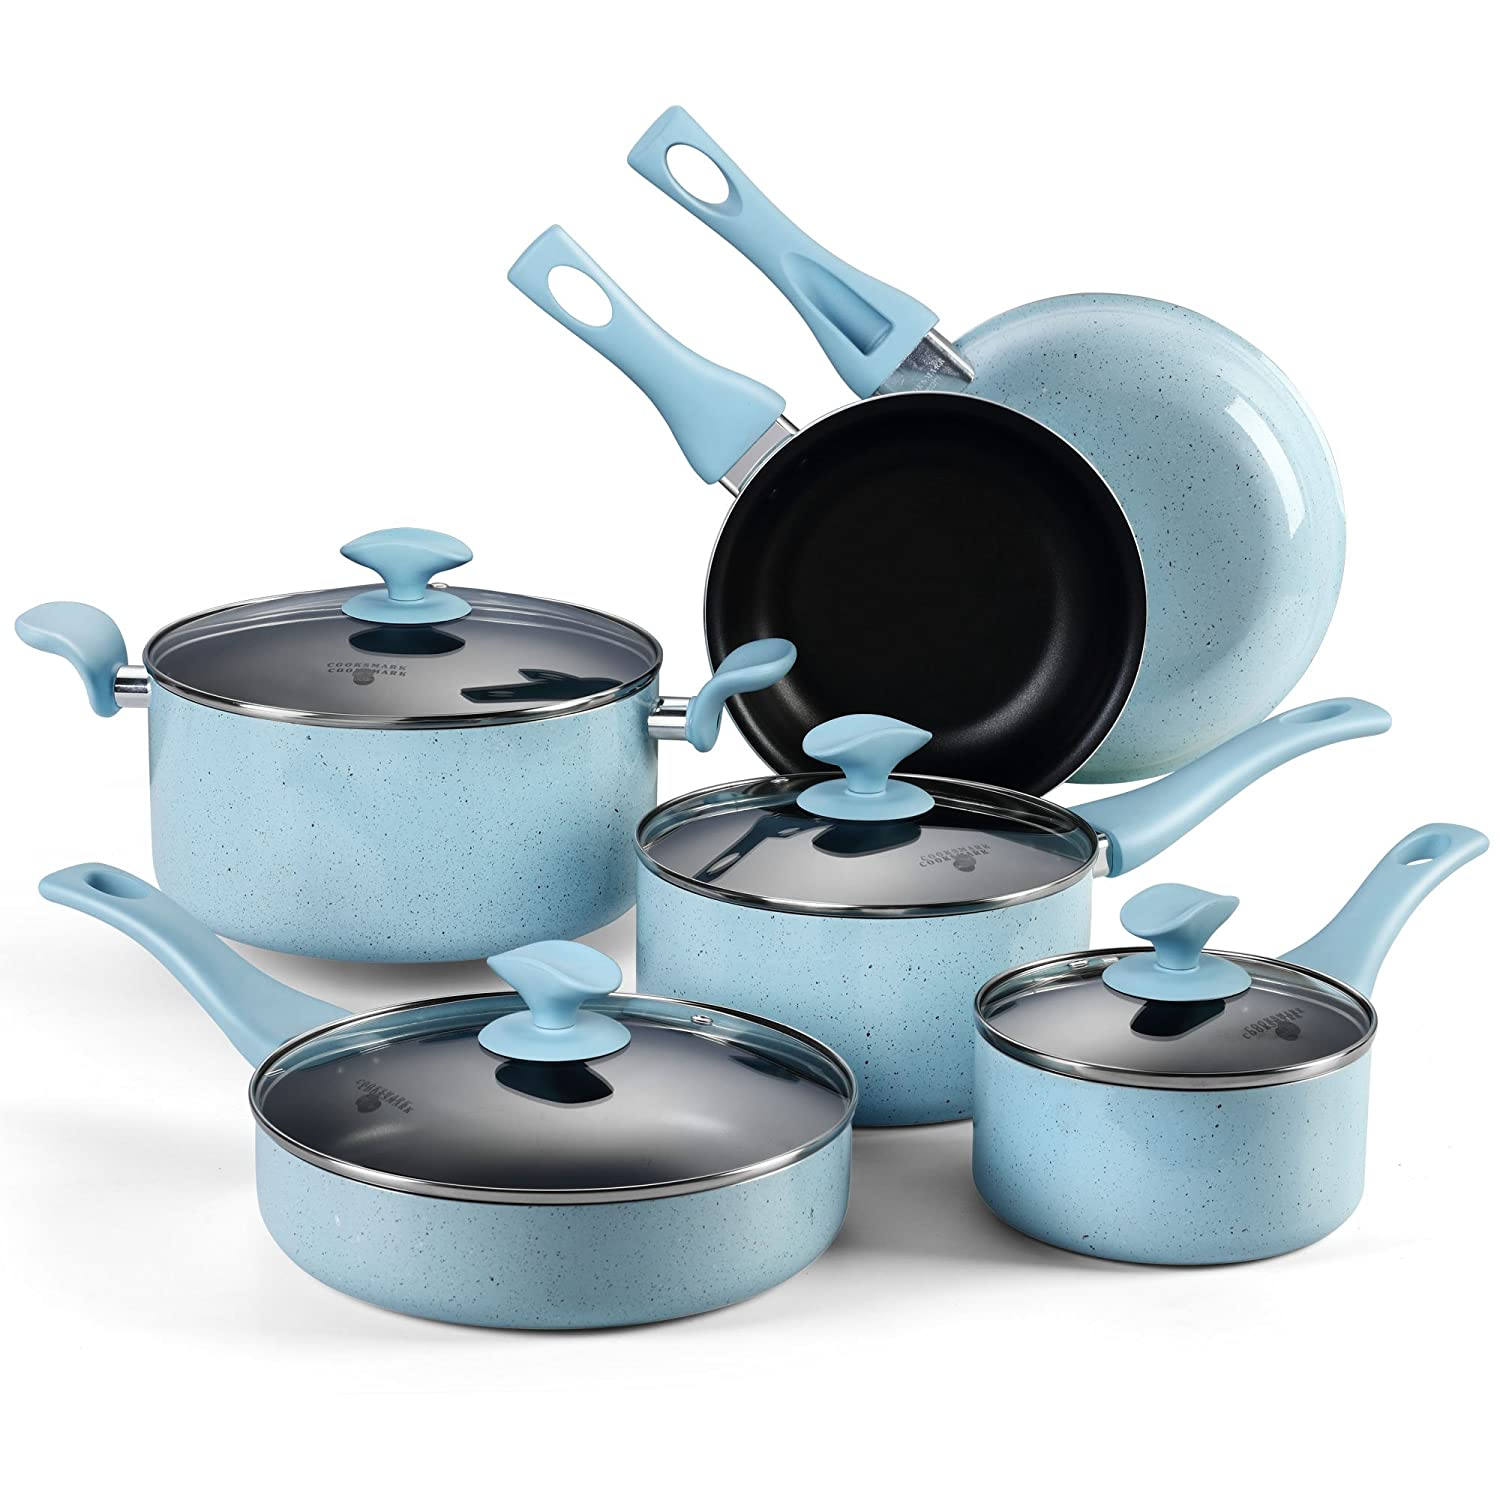 Pots and Pans Set, COOKSMARK Pearl Hard Porcelain Enamel Nonstick Cookware Set, 10-Piece, Dishwasher Safe, Blue Speckle 1151001